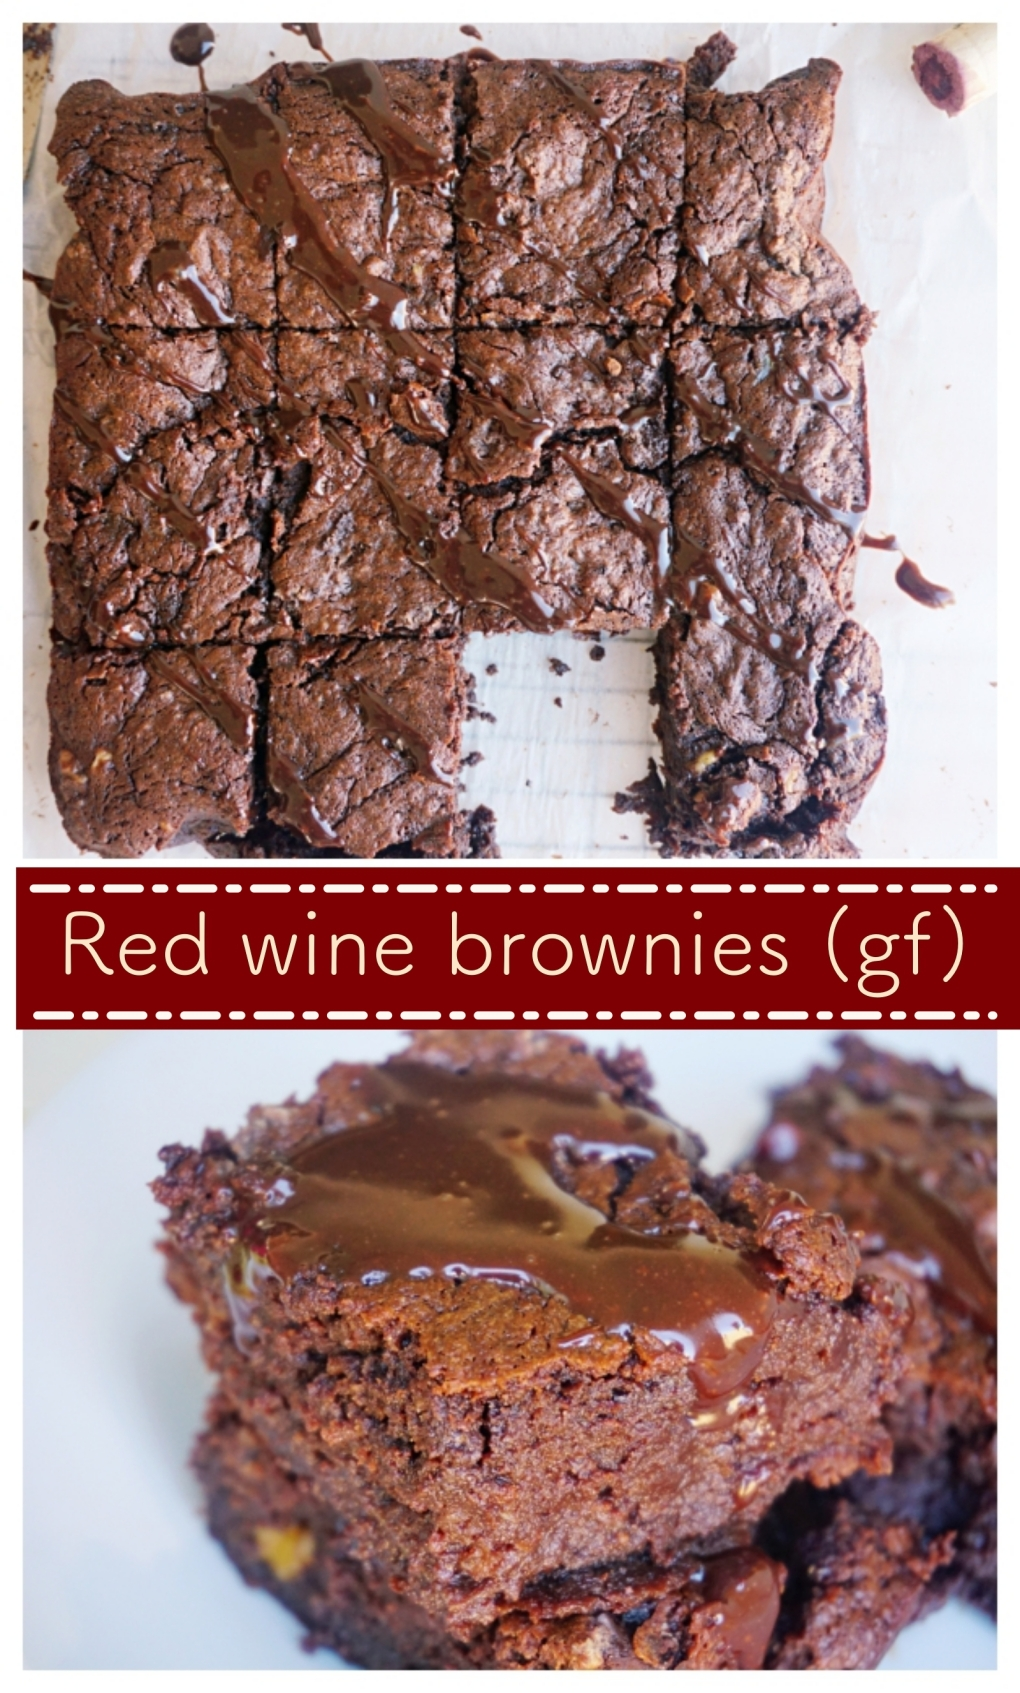 Gluten free fudge red wine brownies!So delicious!